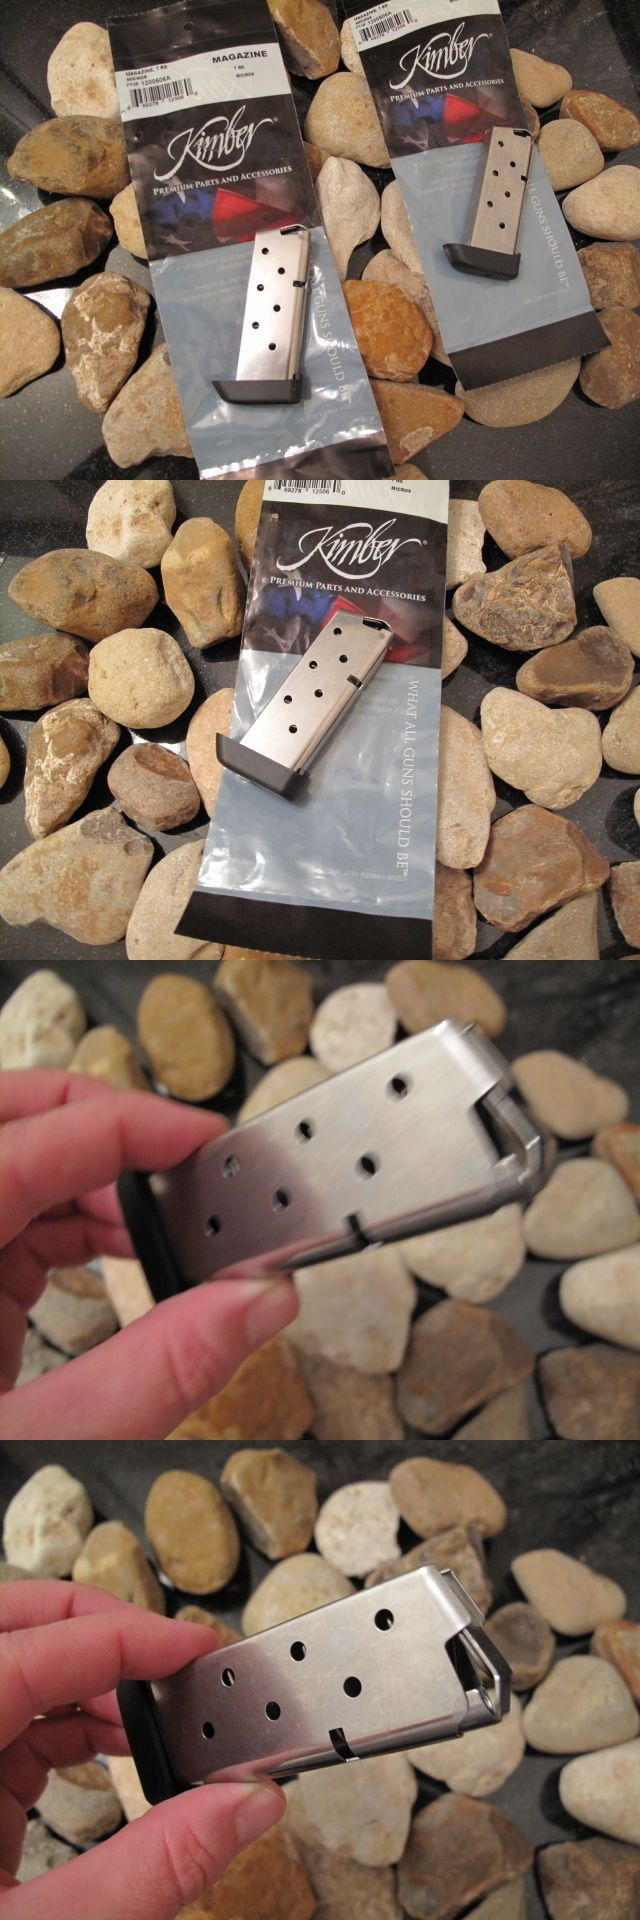 Magazines 177879: 2 Pack Kimber Micro 9 Extended Pinkie (2017 Model!) 7 Round Magazine Mag 9Mm -> BUY IT NOW ONLY: $62.0 on eBay!